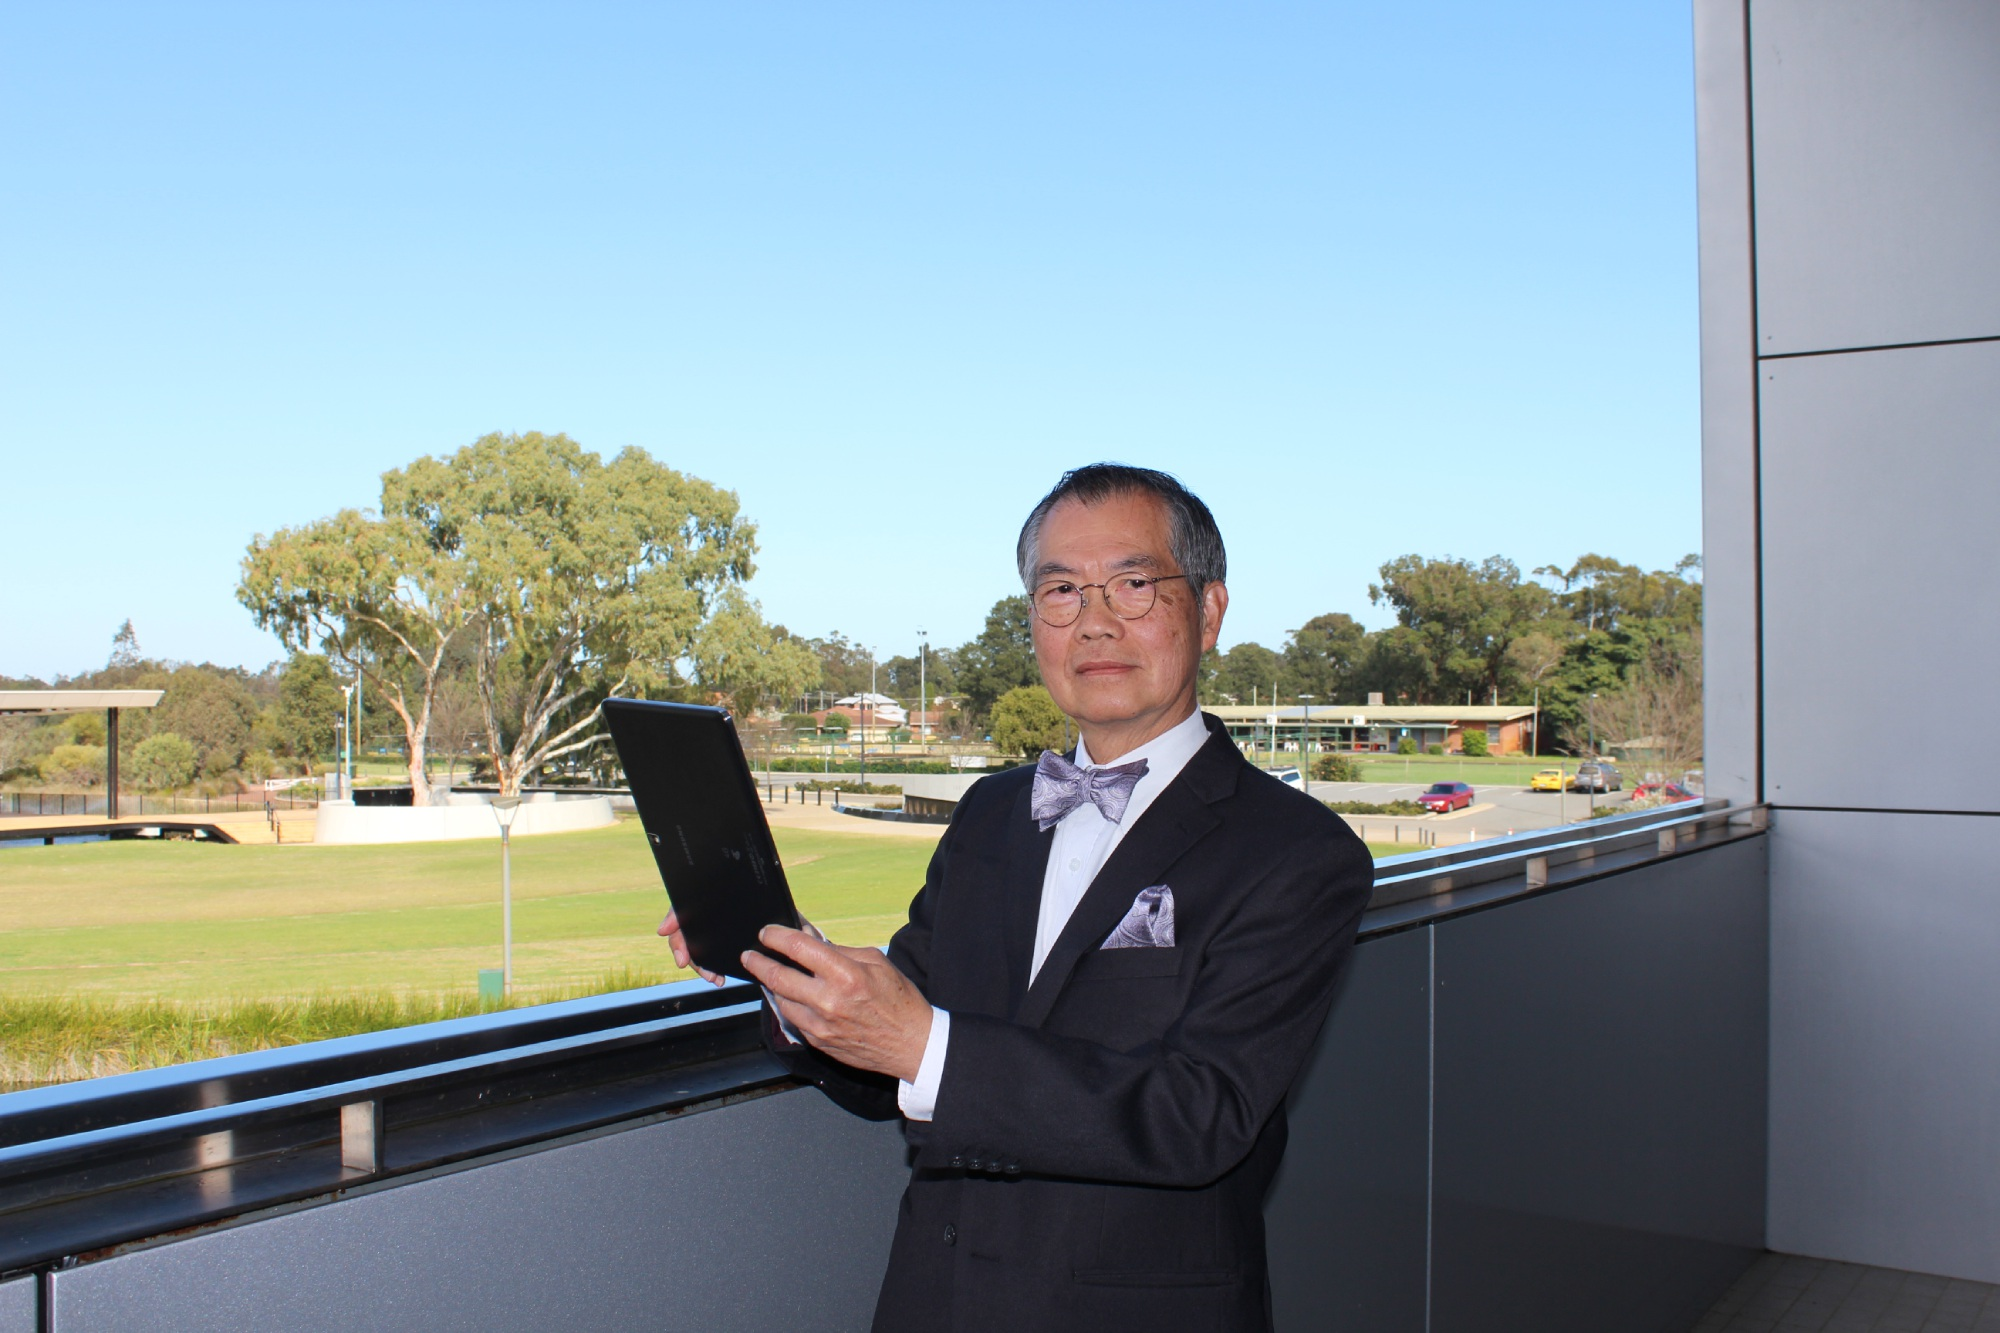 Canning Mayor Paul Ng gets busy on Instagram.